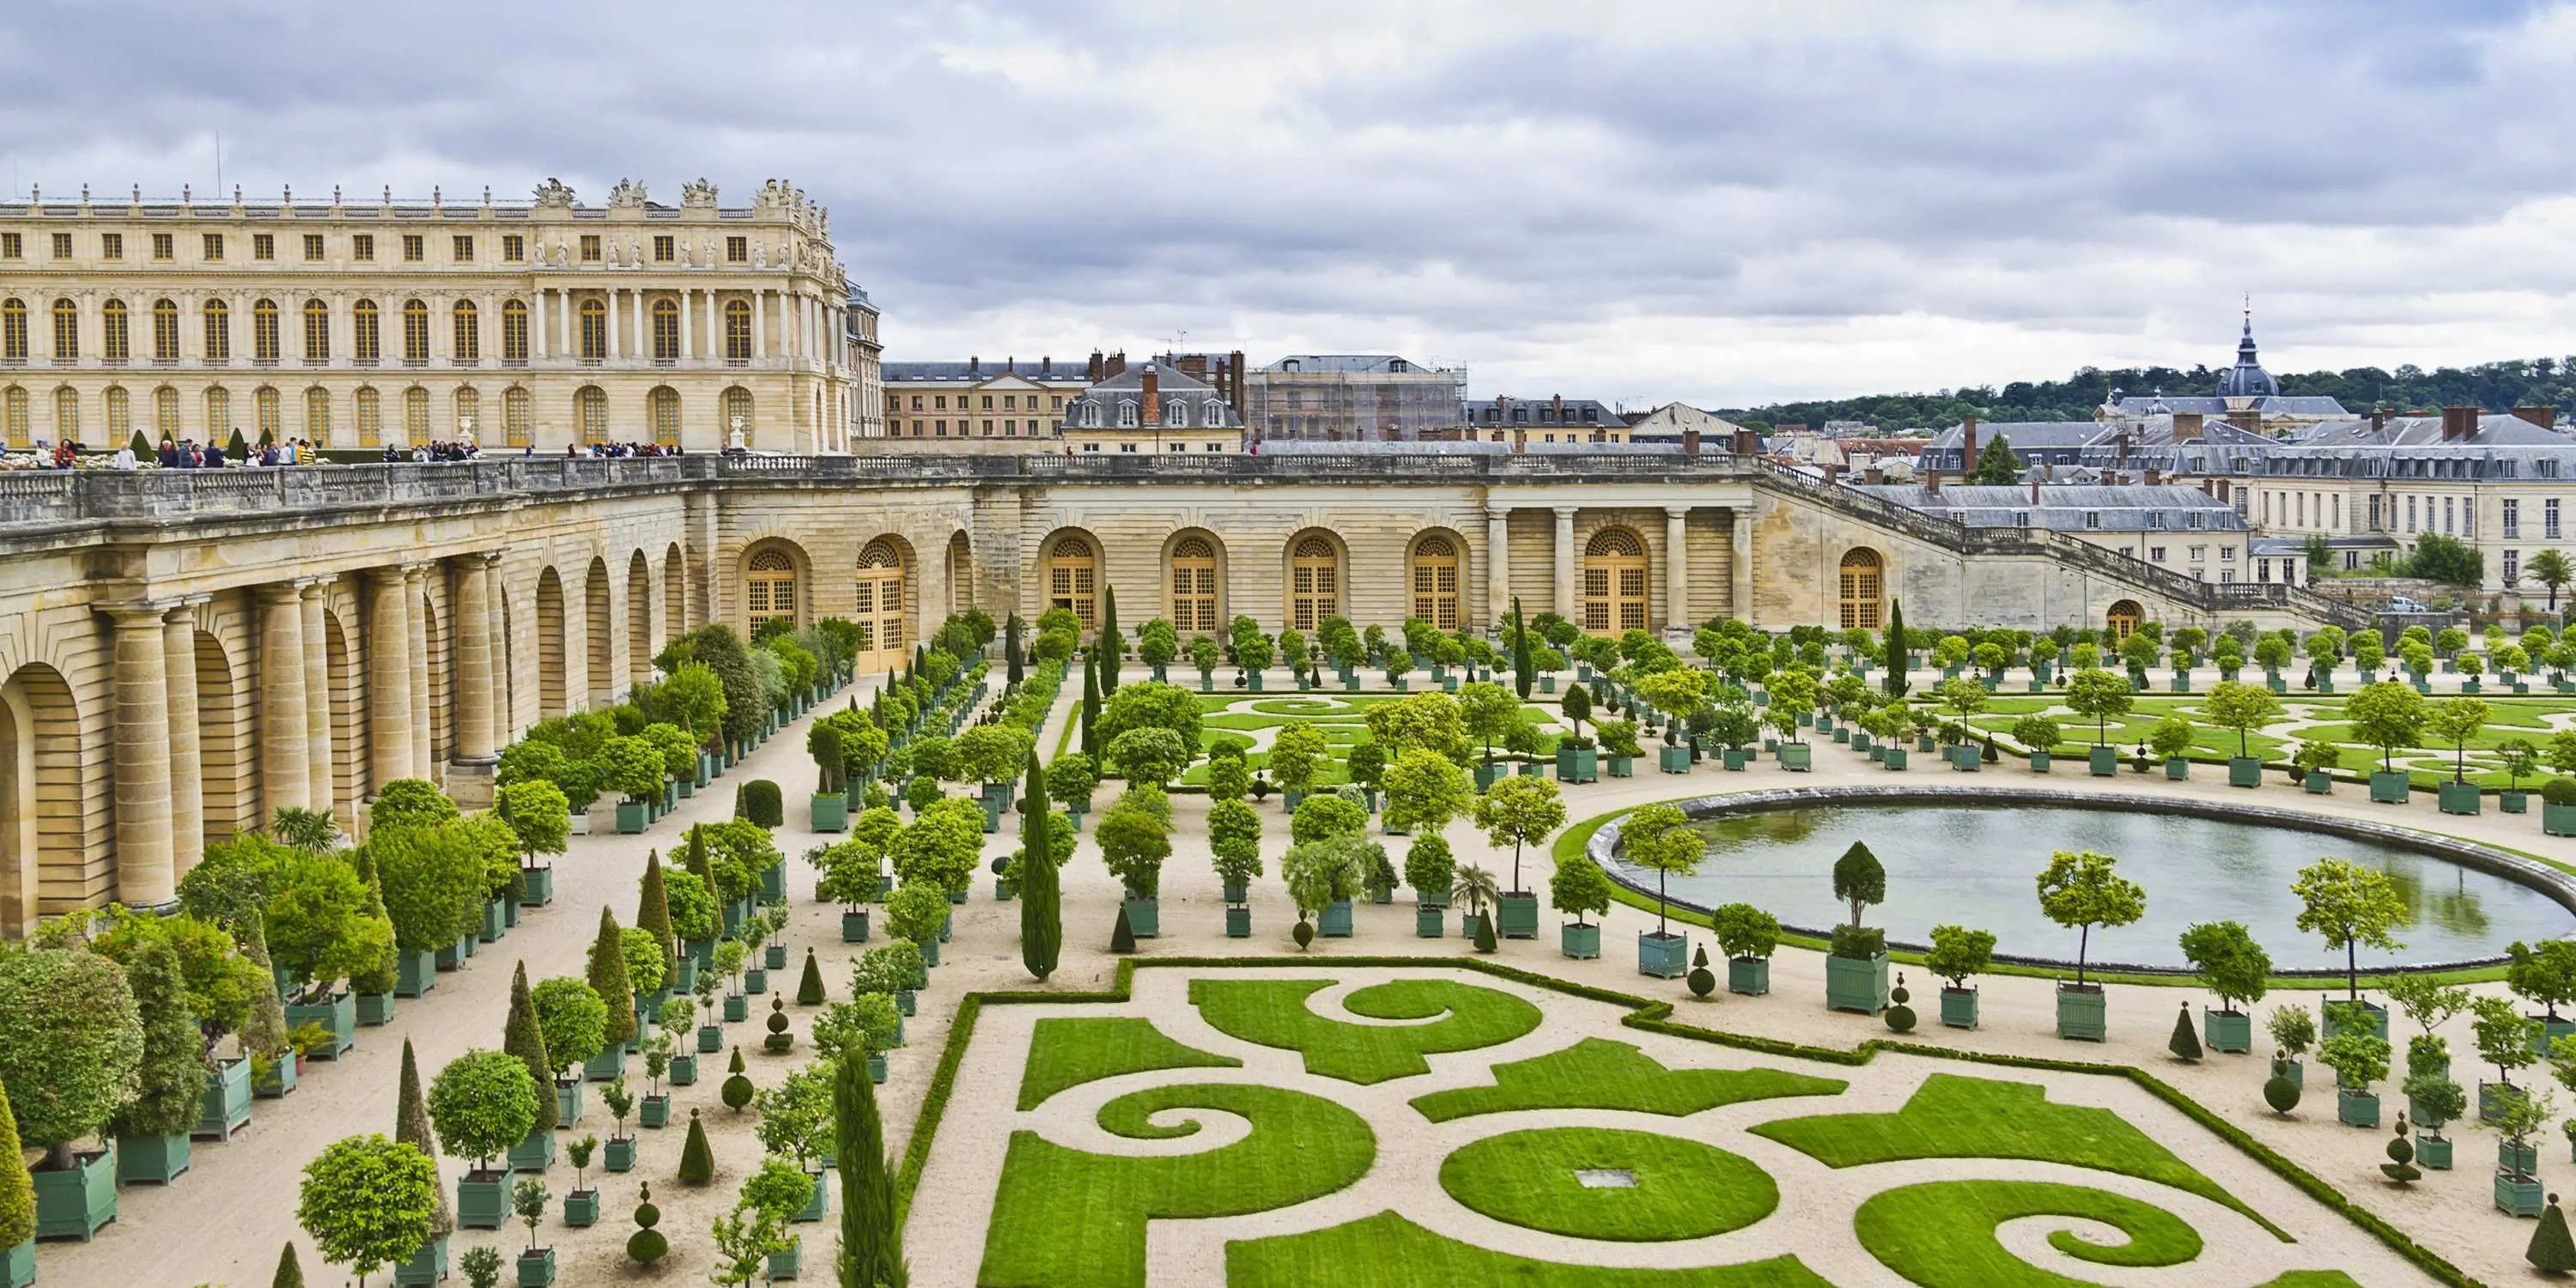 Barockgarten Plan Everything You Need To Know To Plan A Day Trip From Paris